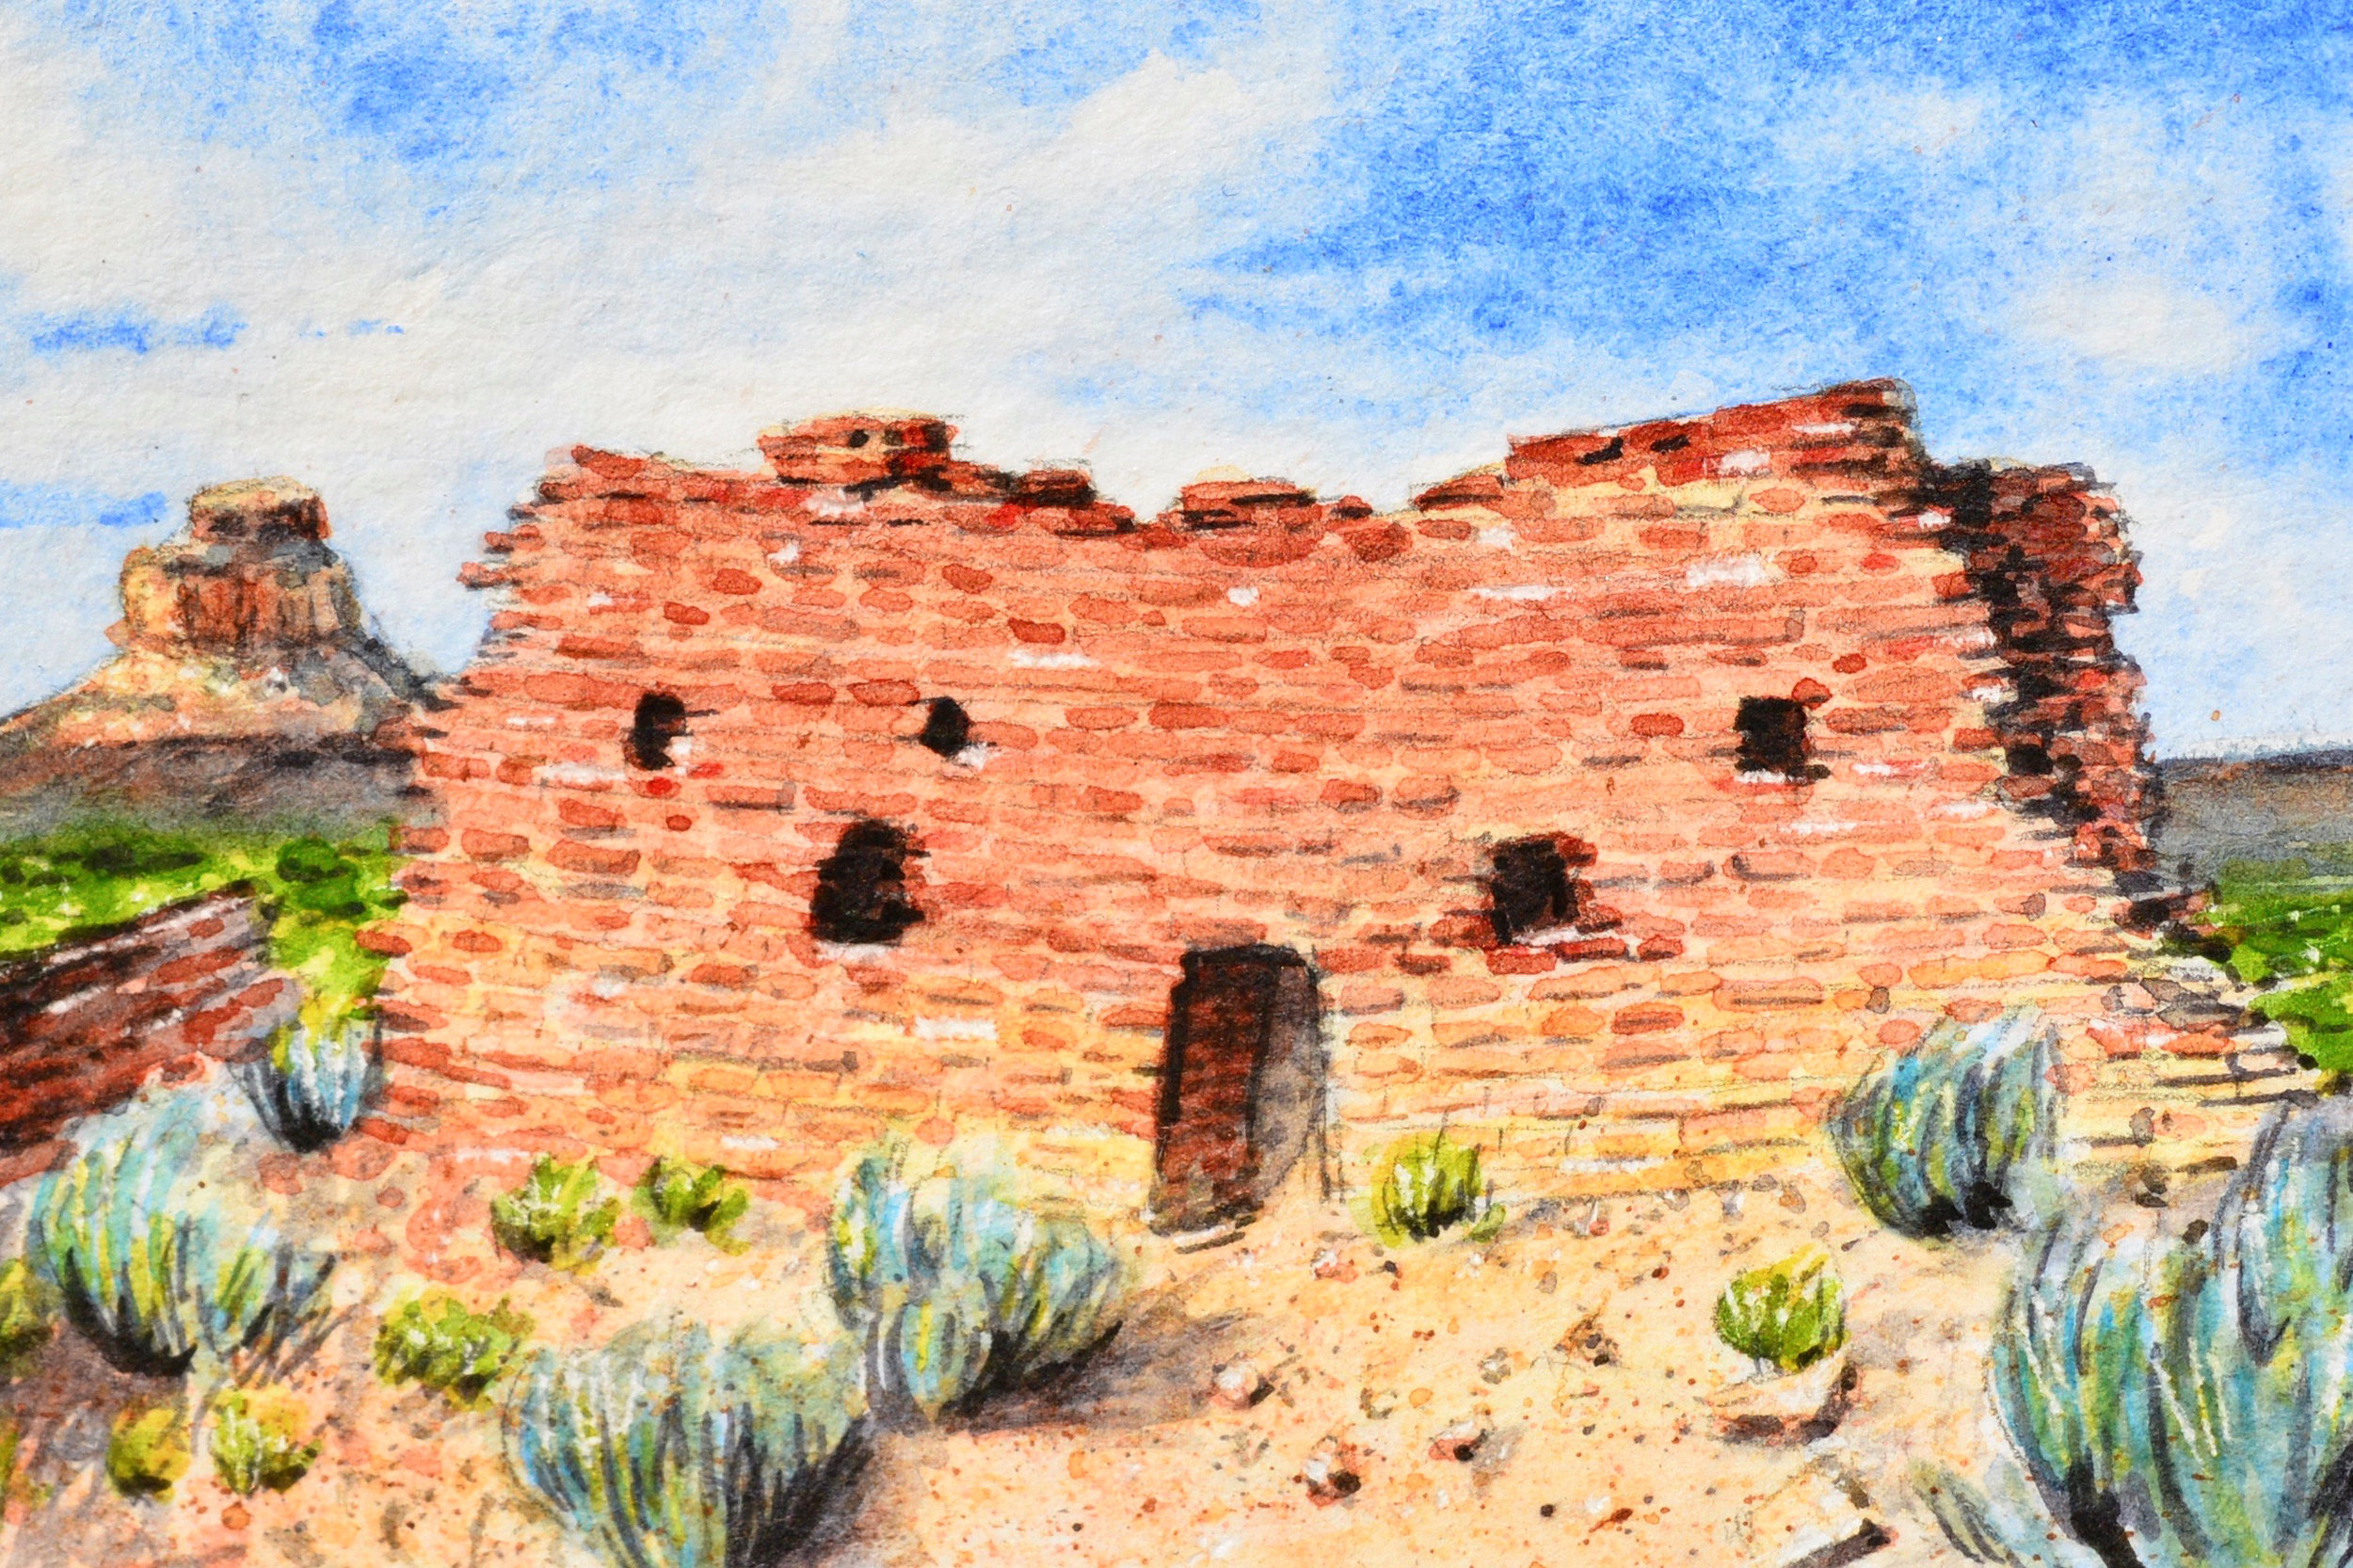 """Chaco Culture National Historical Park, New Mexico: 6/10/19, 8:22:19"" 3x2"" watercolor on 140 lb. watercolor paper For sale as of this blog posting -  visit my online shop  to purchase."